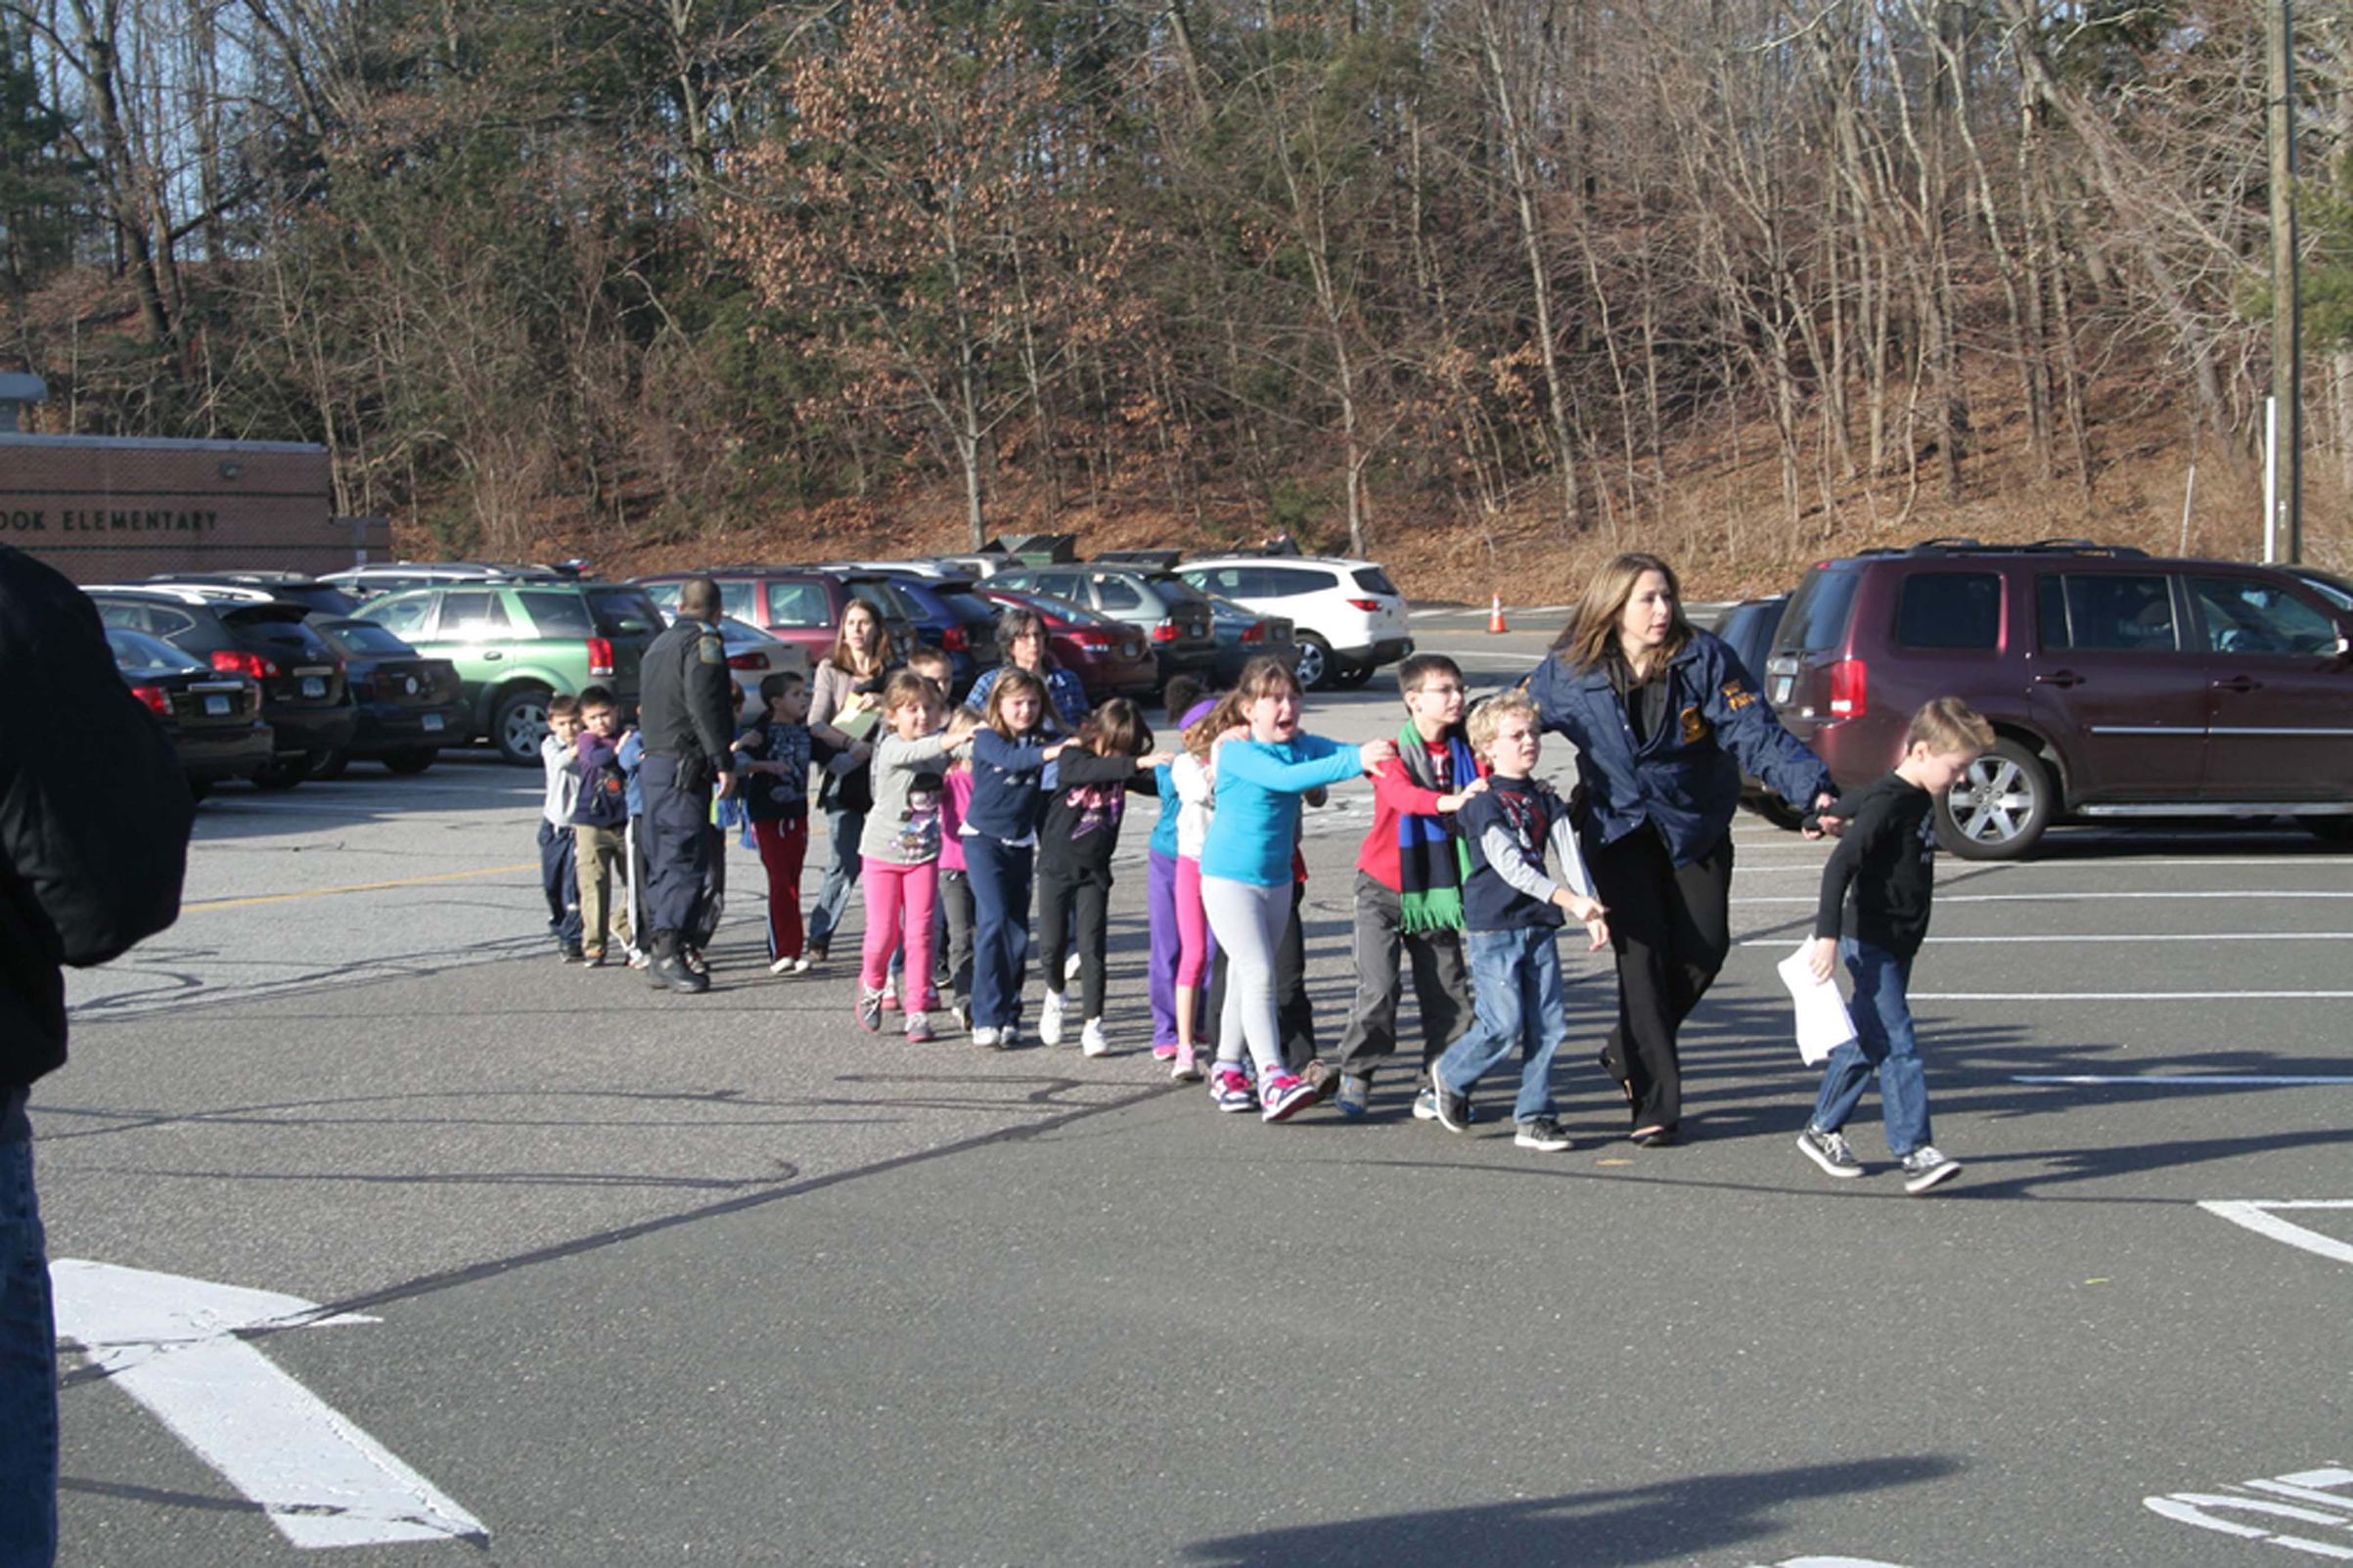 Connecticut State Police lead students from the Sandy Hook Elementary School to safety after a mass shooting on Dec. 14, 2012.